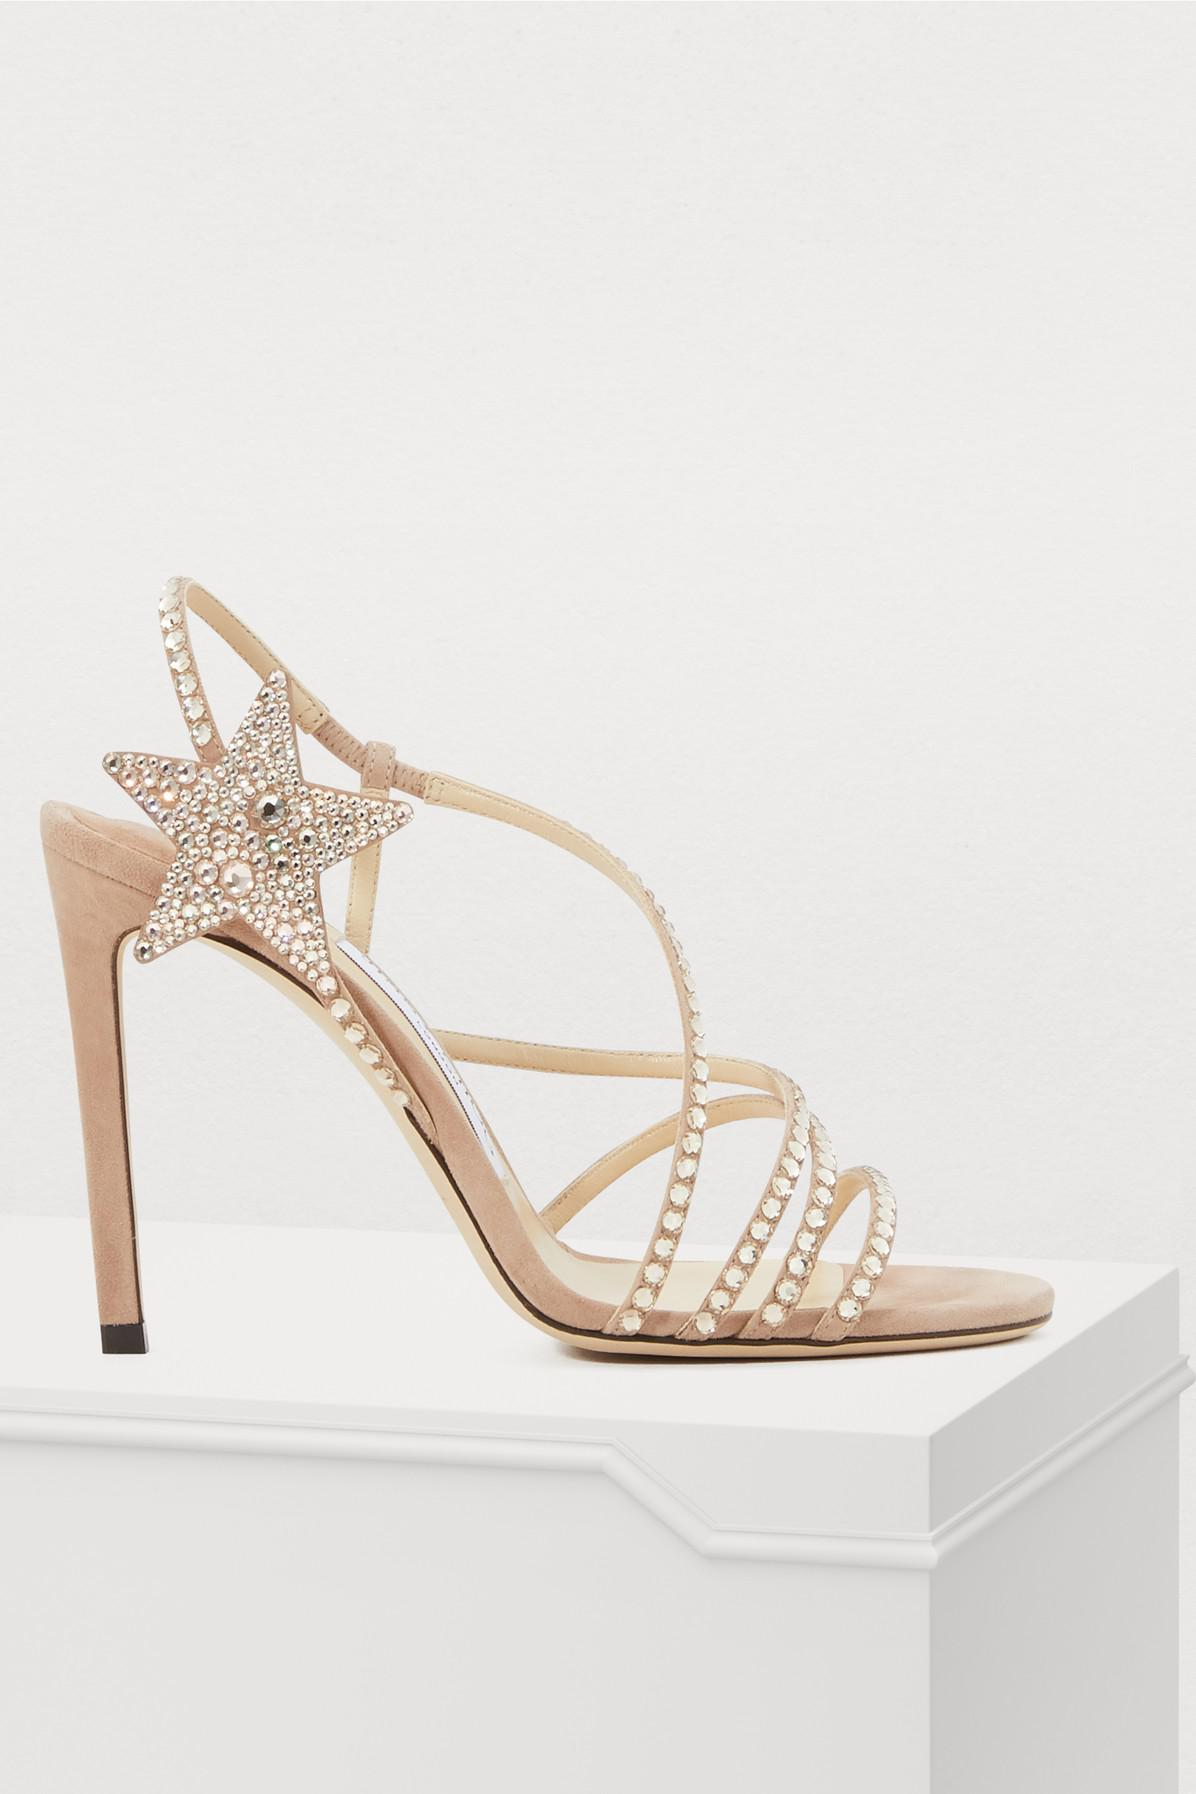 8c9b9a486eb2 Jimmy Choo. Women s Lynn 100 Sandals